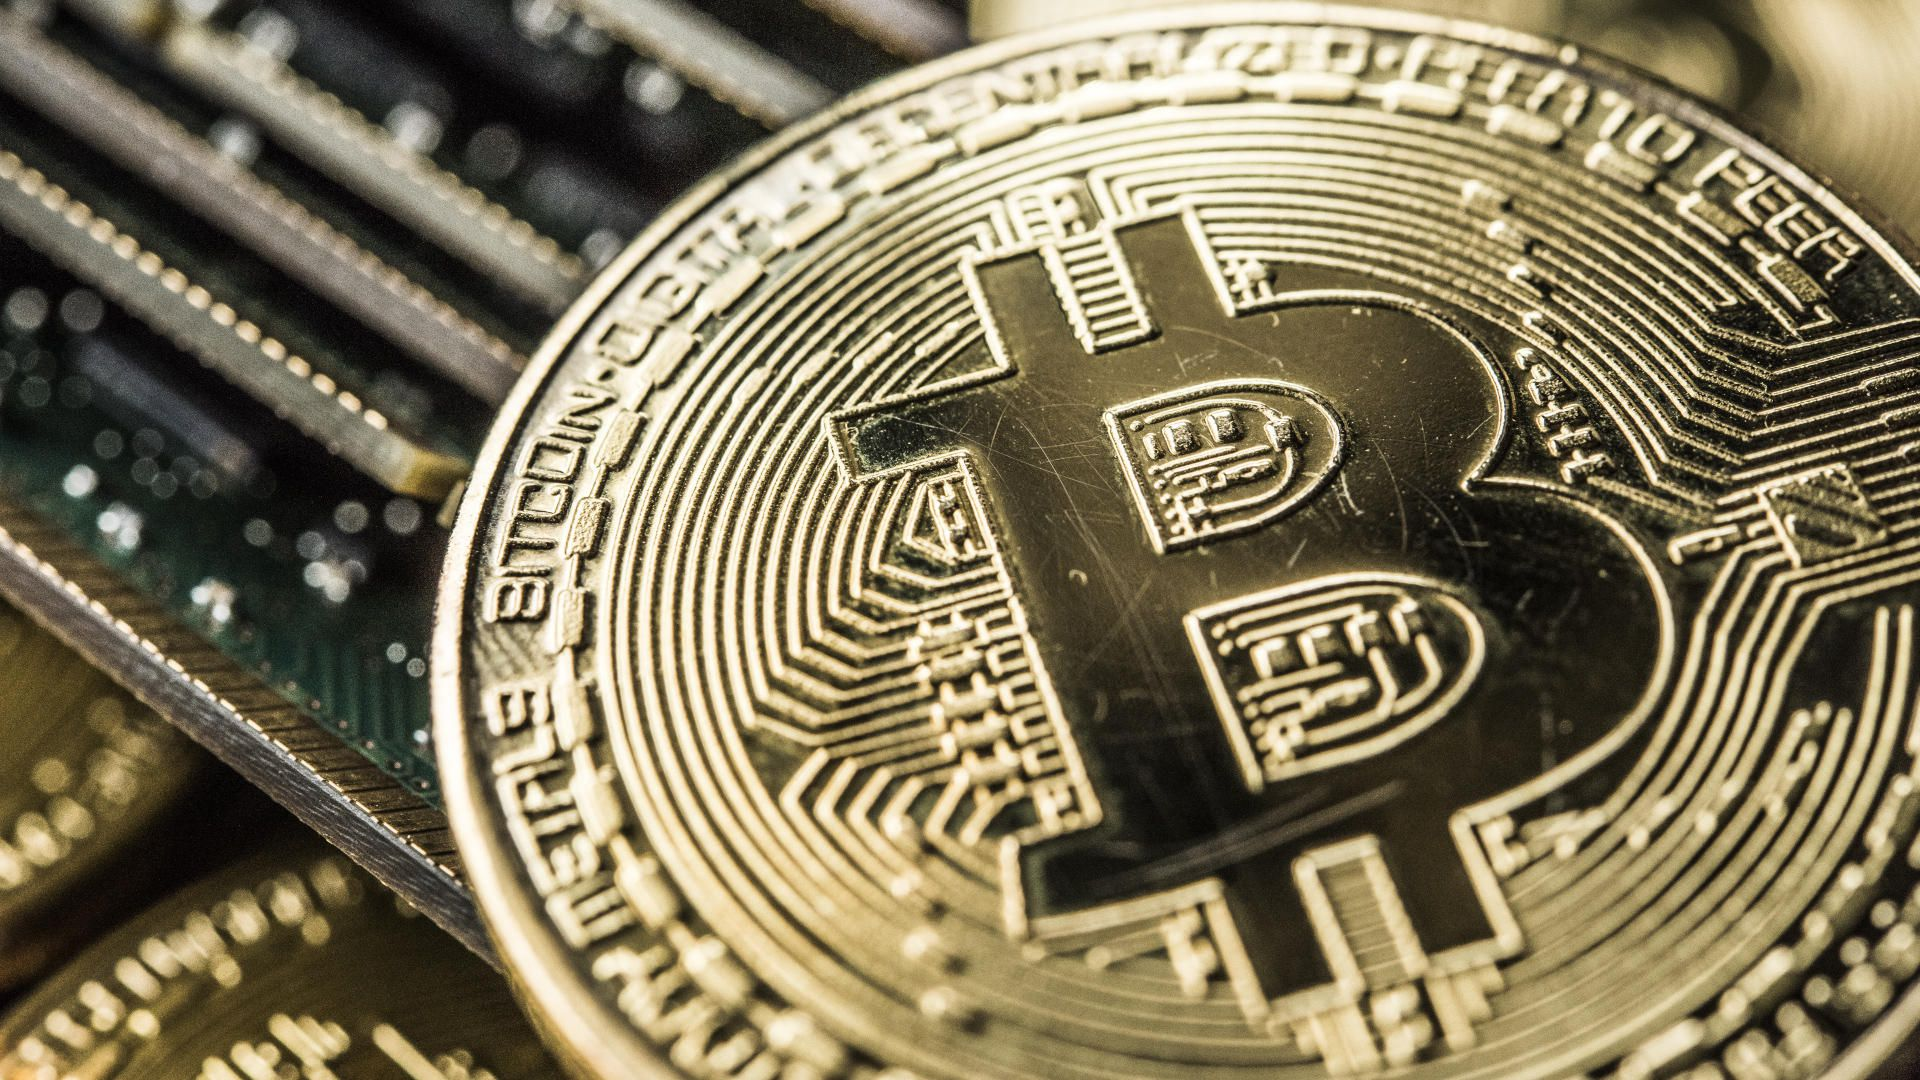 Thieves steal 600 powerful bitcoin-mining computers in huge heist